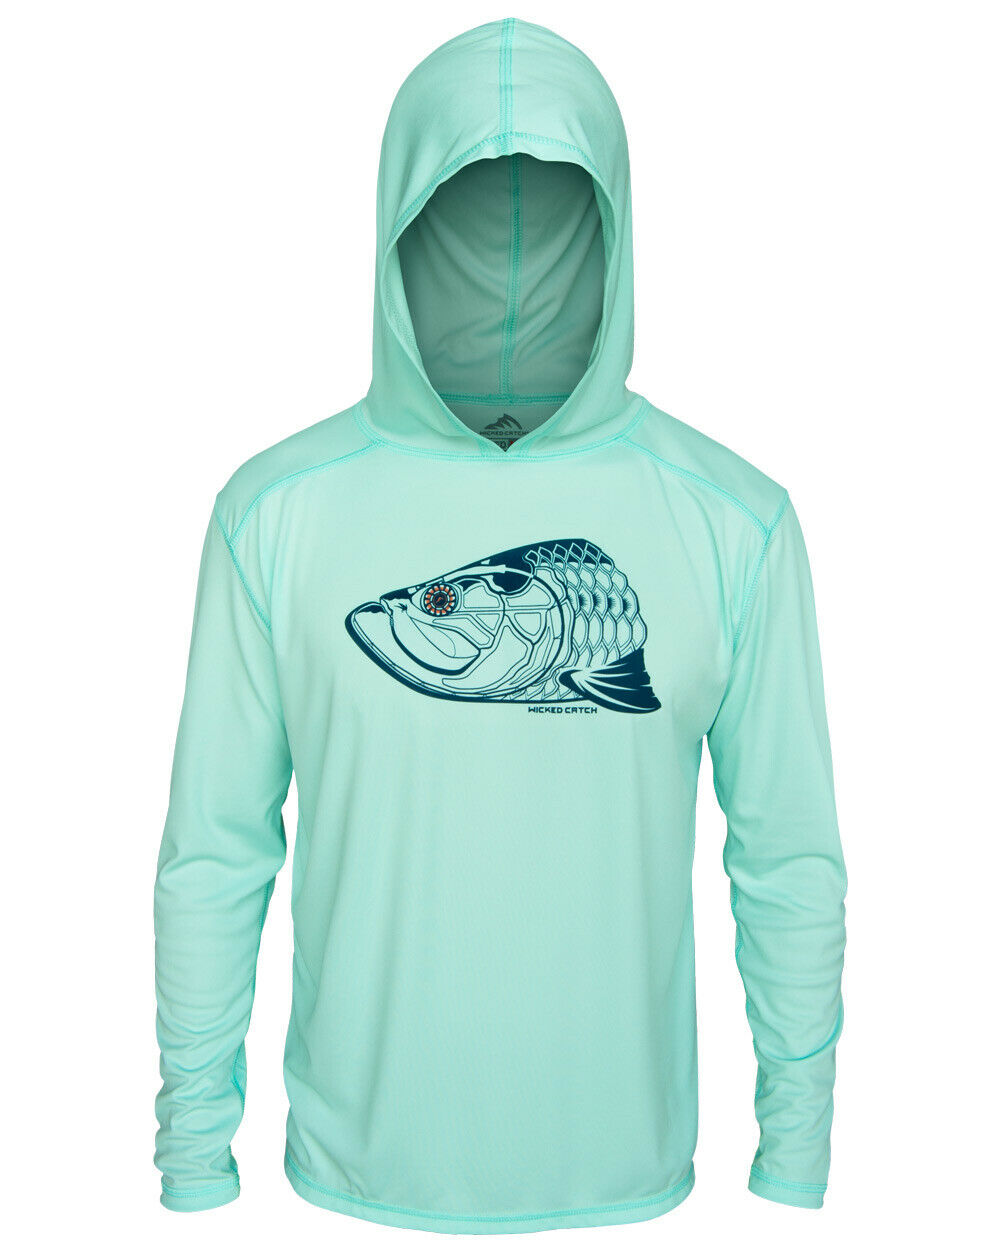 Wicked Catch Super Fly Tarpon UPF 50 Perforuomoce Hoodie pesca Shirt